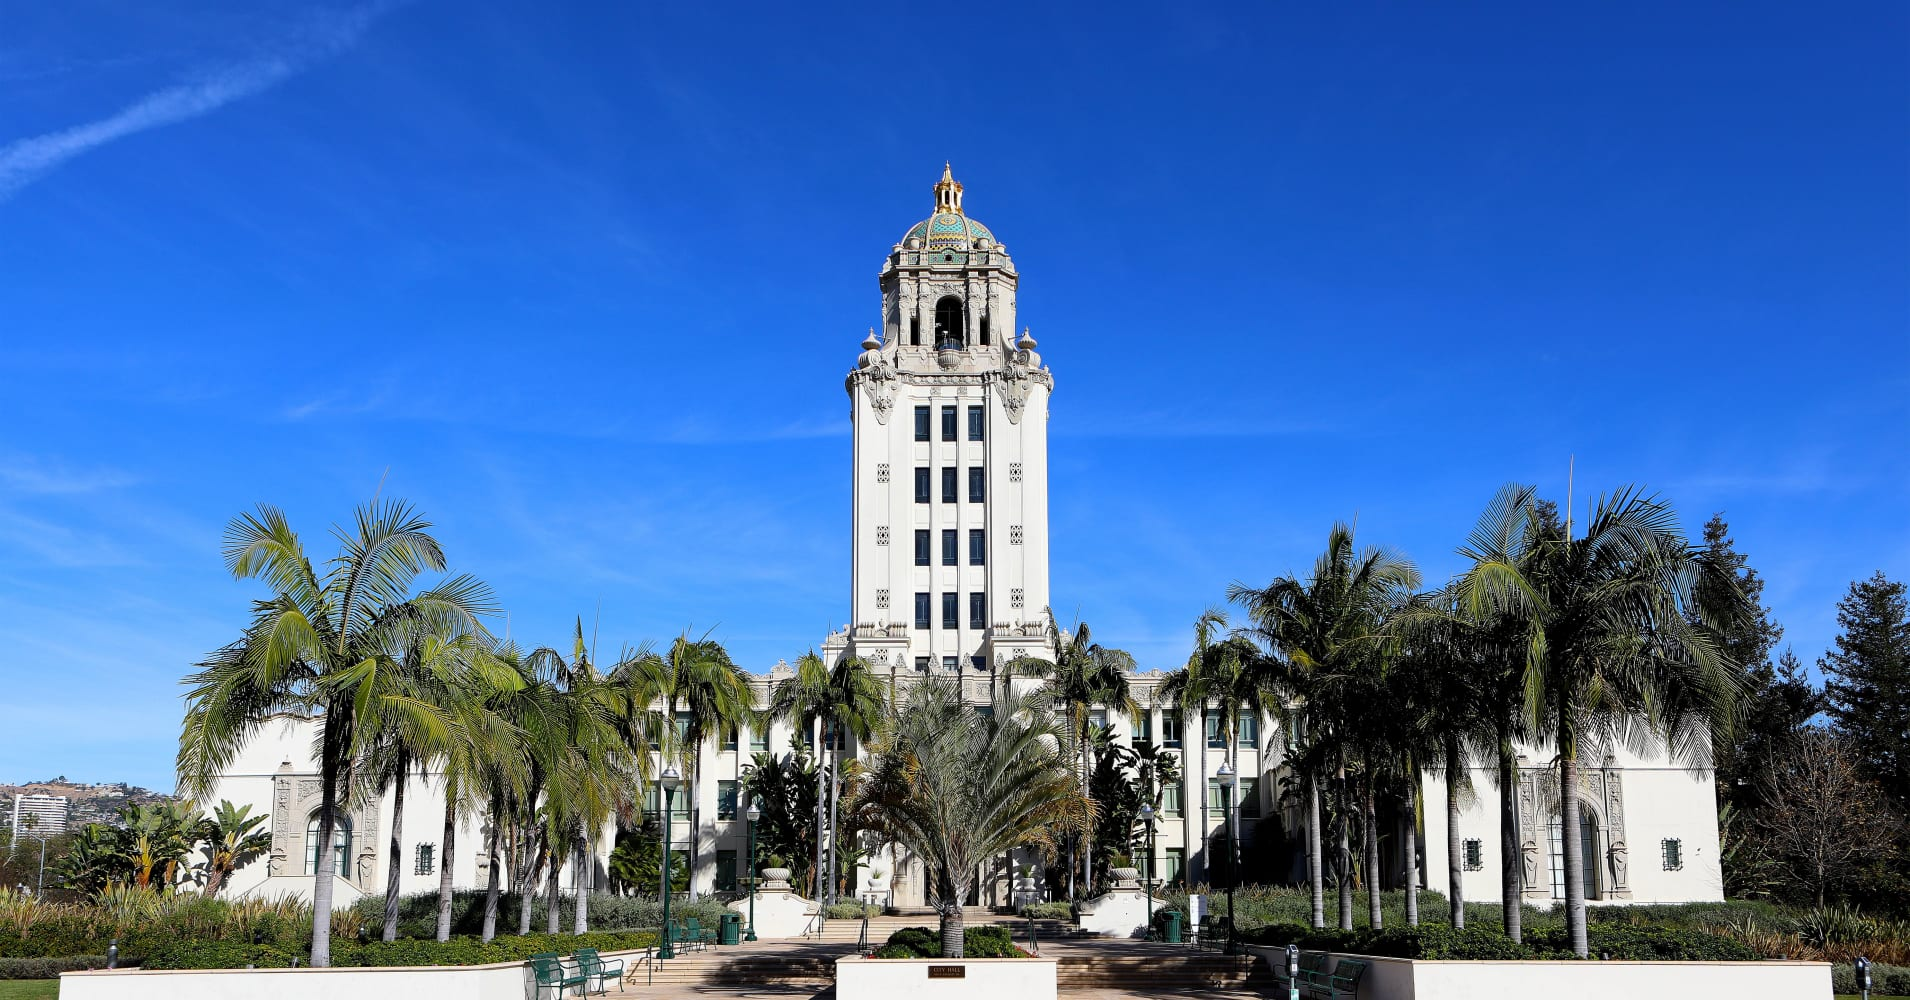 Beverly Hills City Hall in Beverly Hills, California.